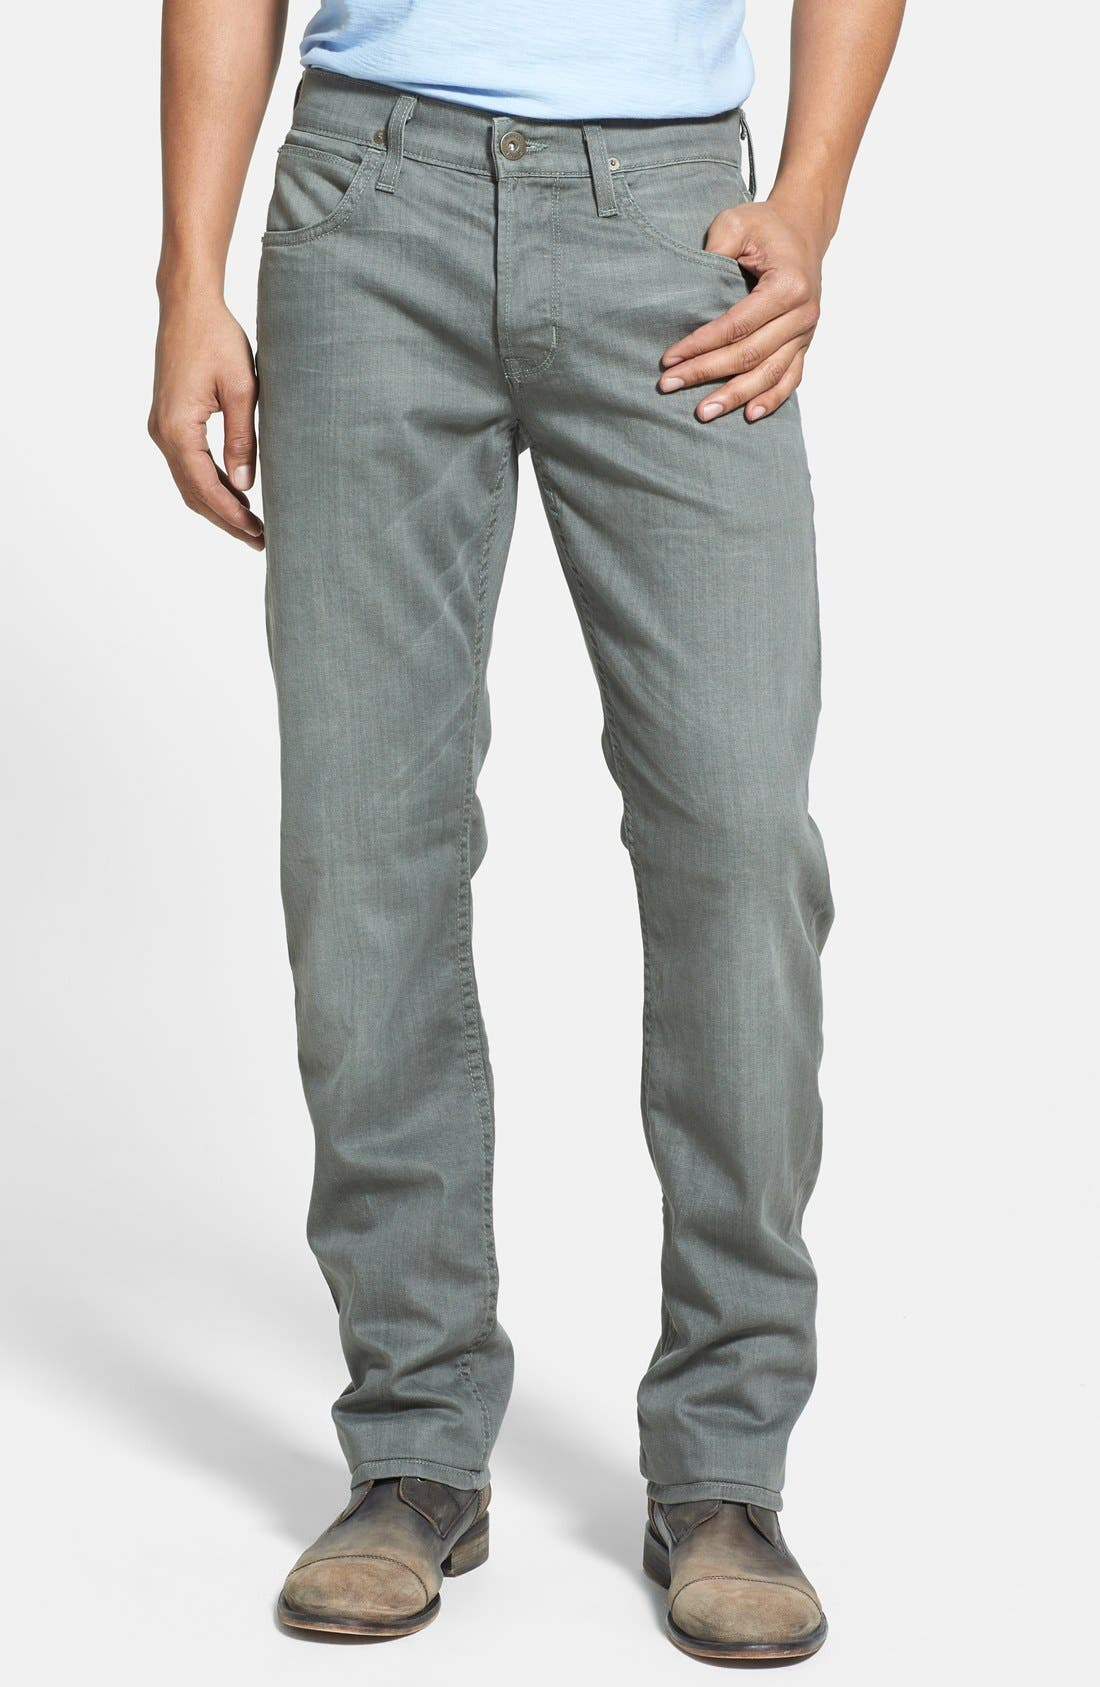 Alternate Image 1 Selected - Hudson Jeans 'Byron' Straight Leg Jeans (Olive Vintage)